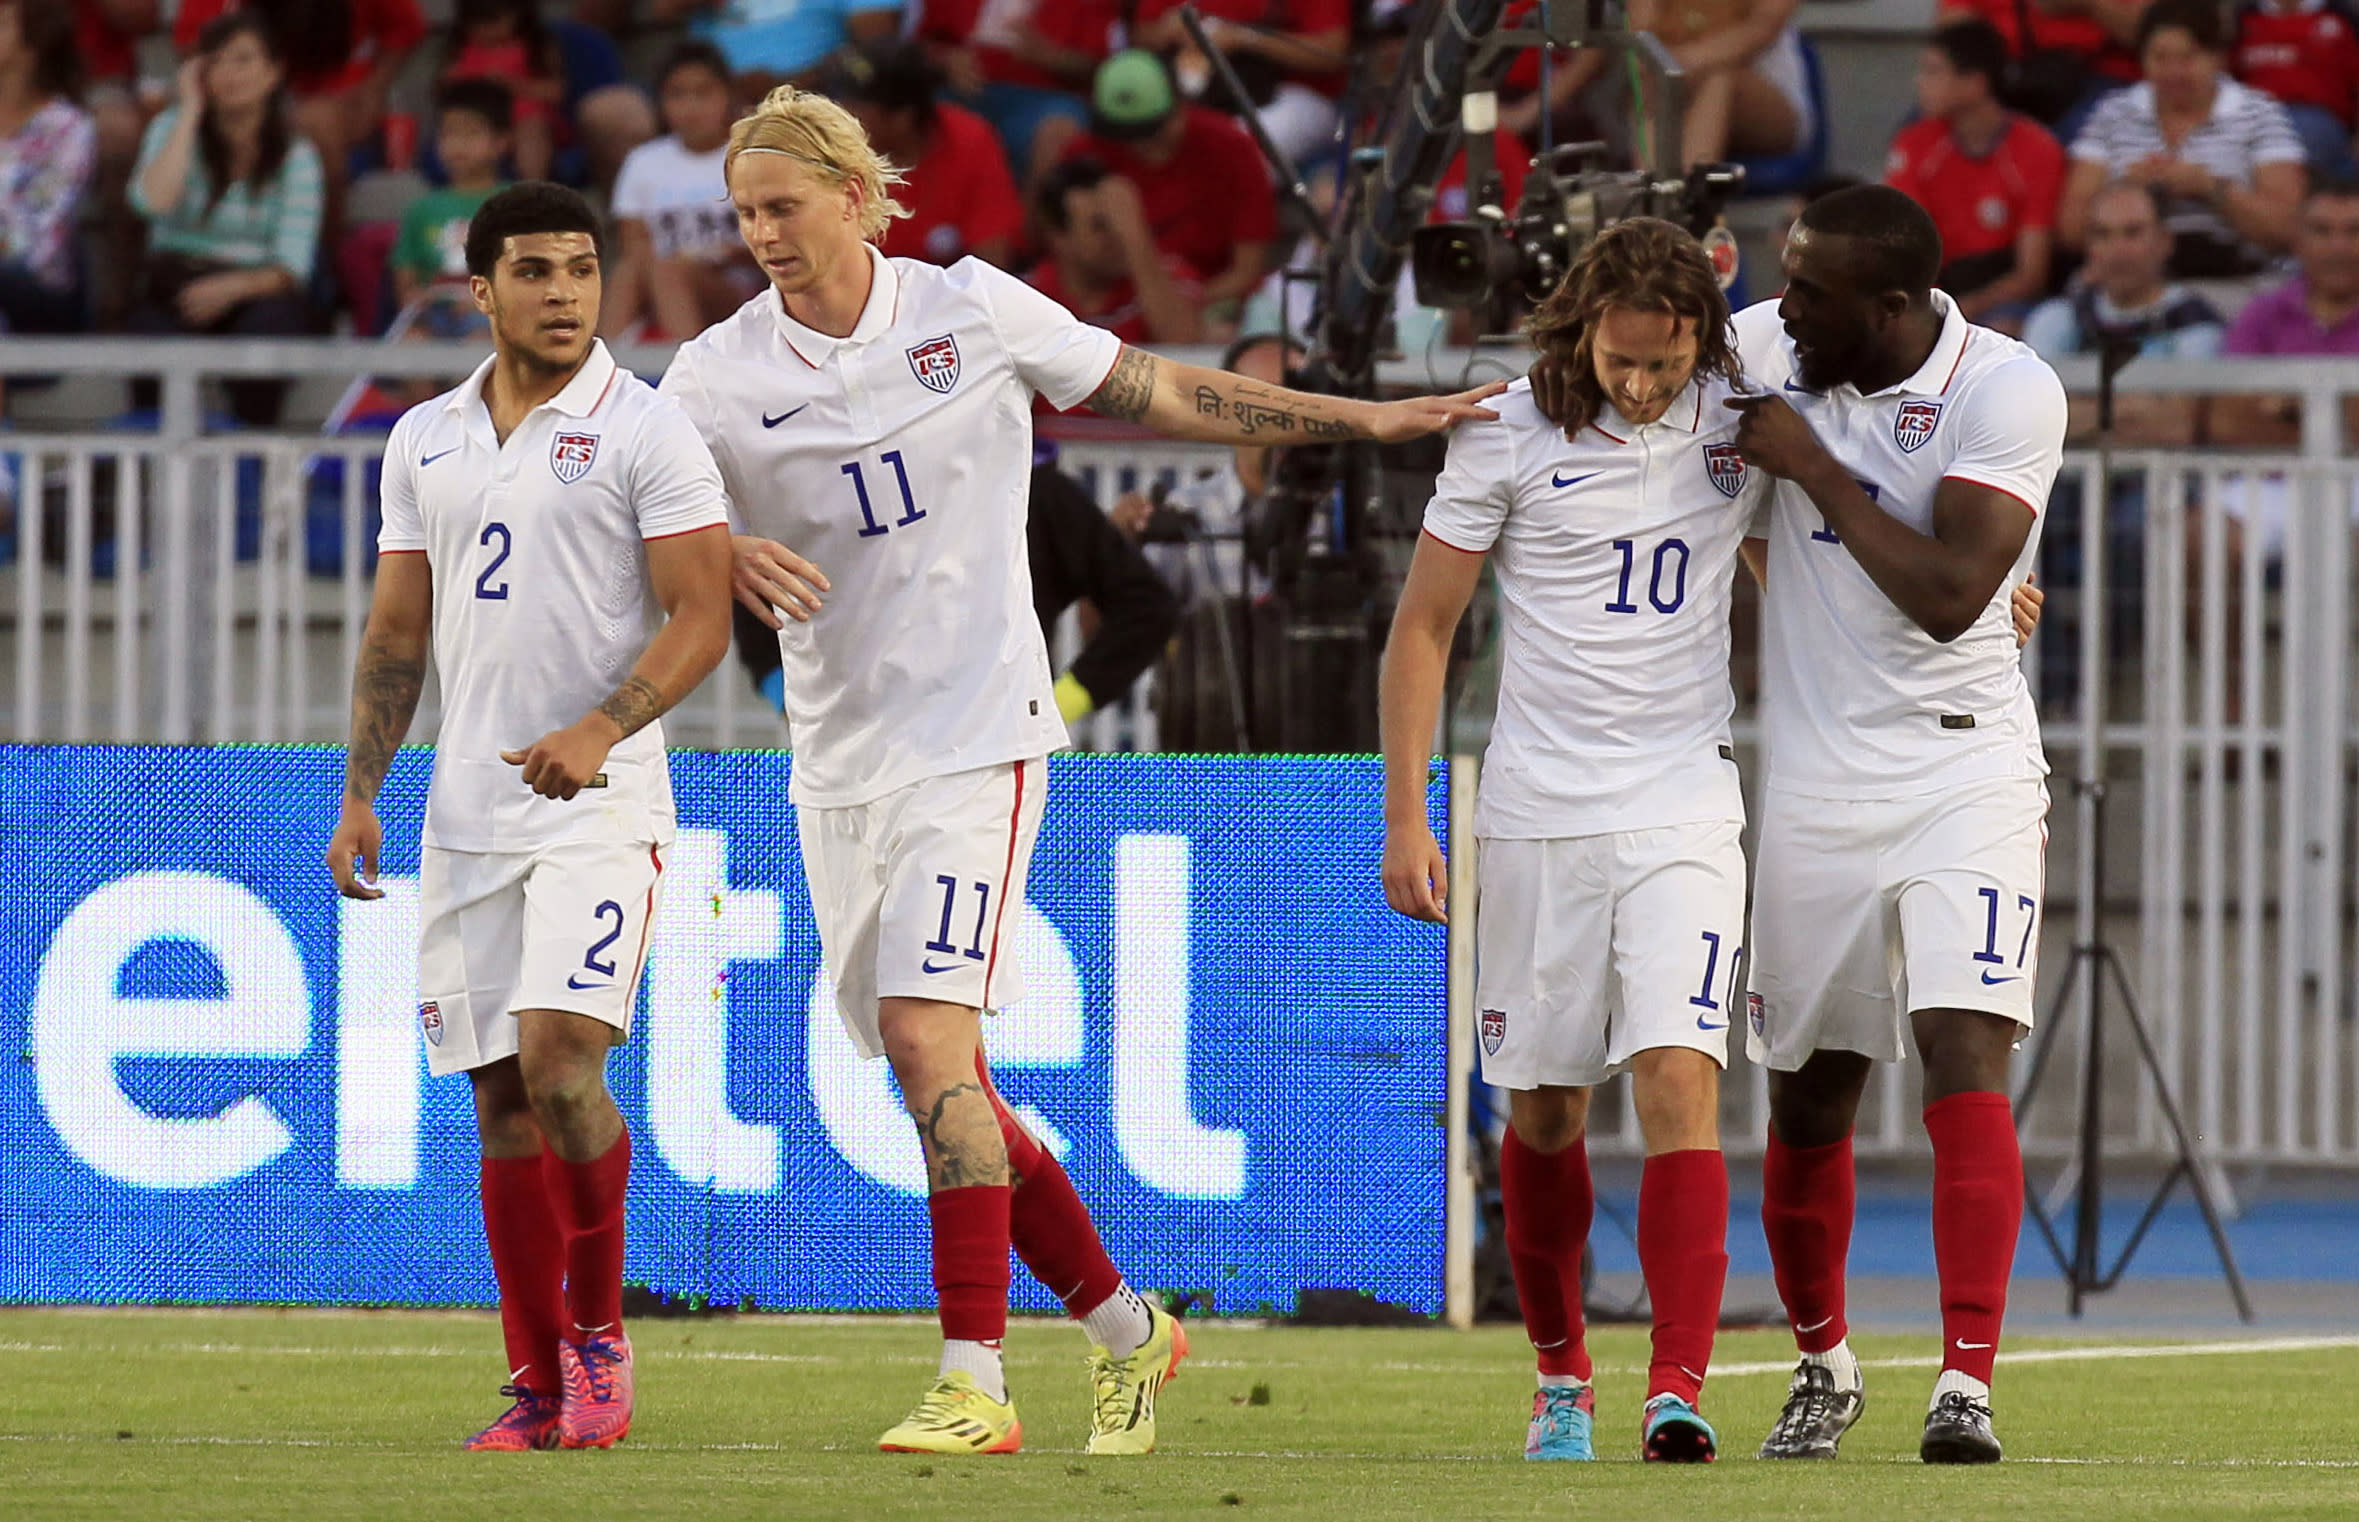 The work has just begun in Jurgen Klinsmann's overhaul of the U.S. men's national team